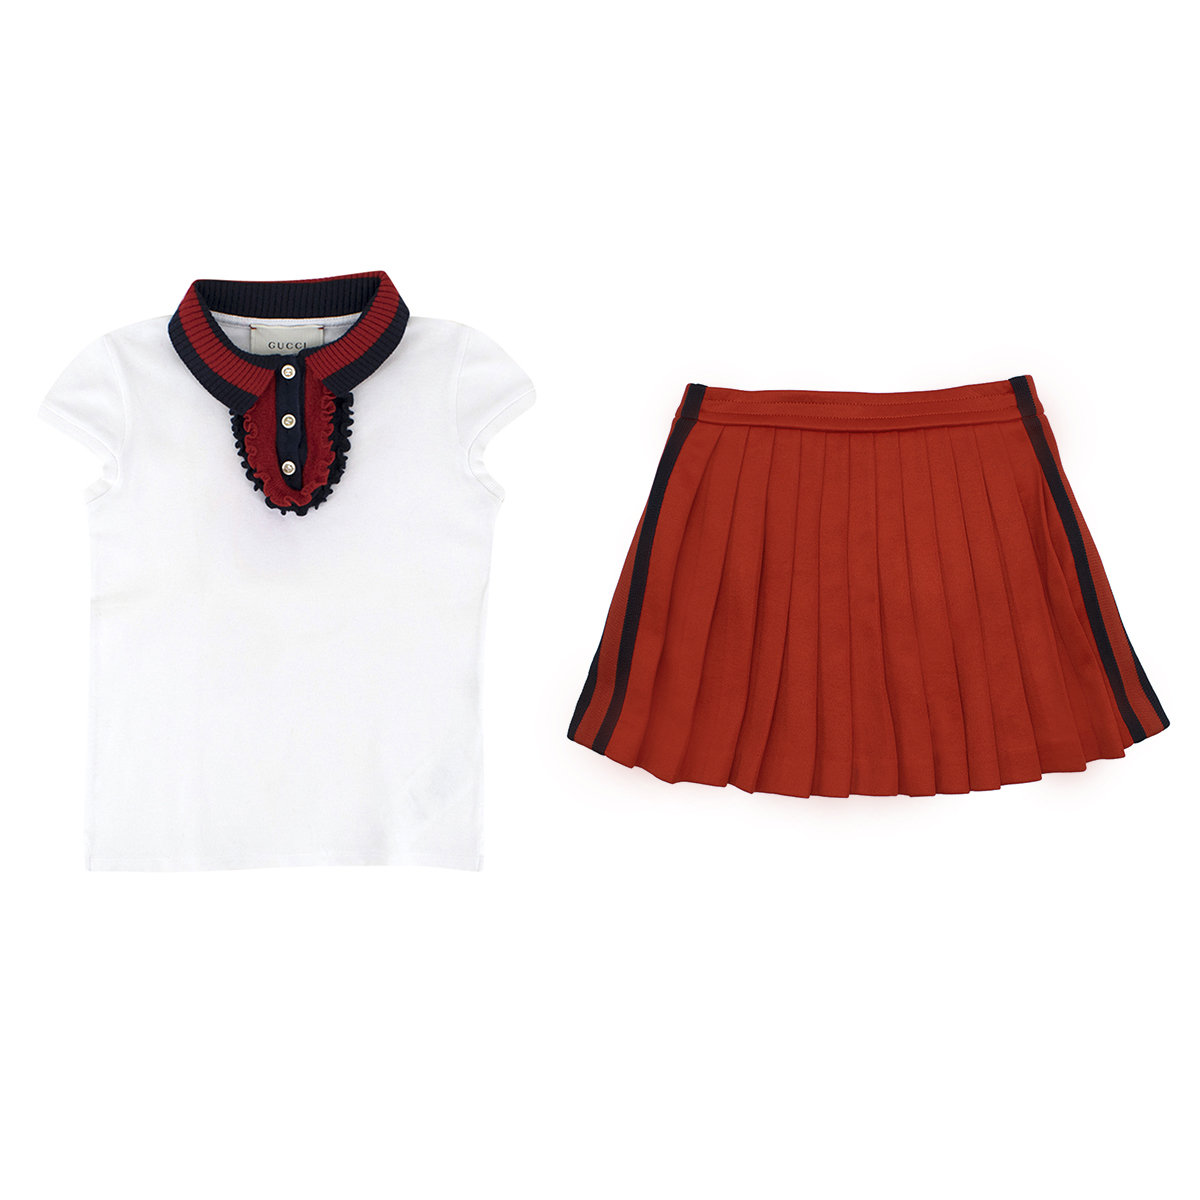 Gucci Girls' White Polo Top & Red Skirt Set